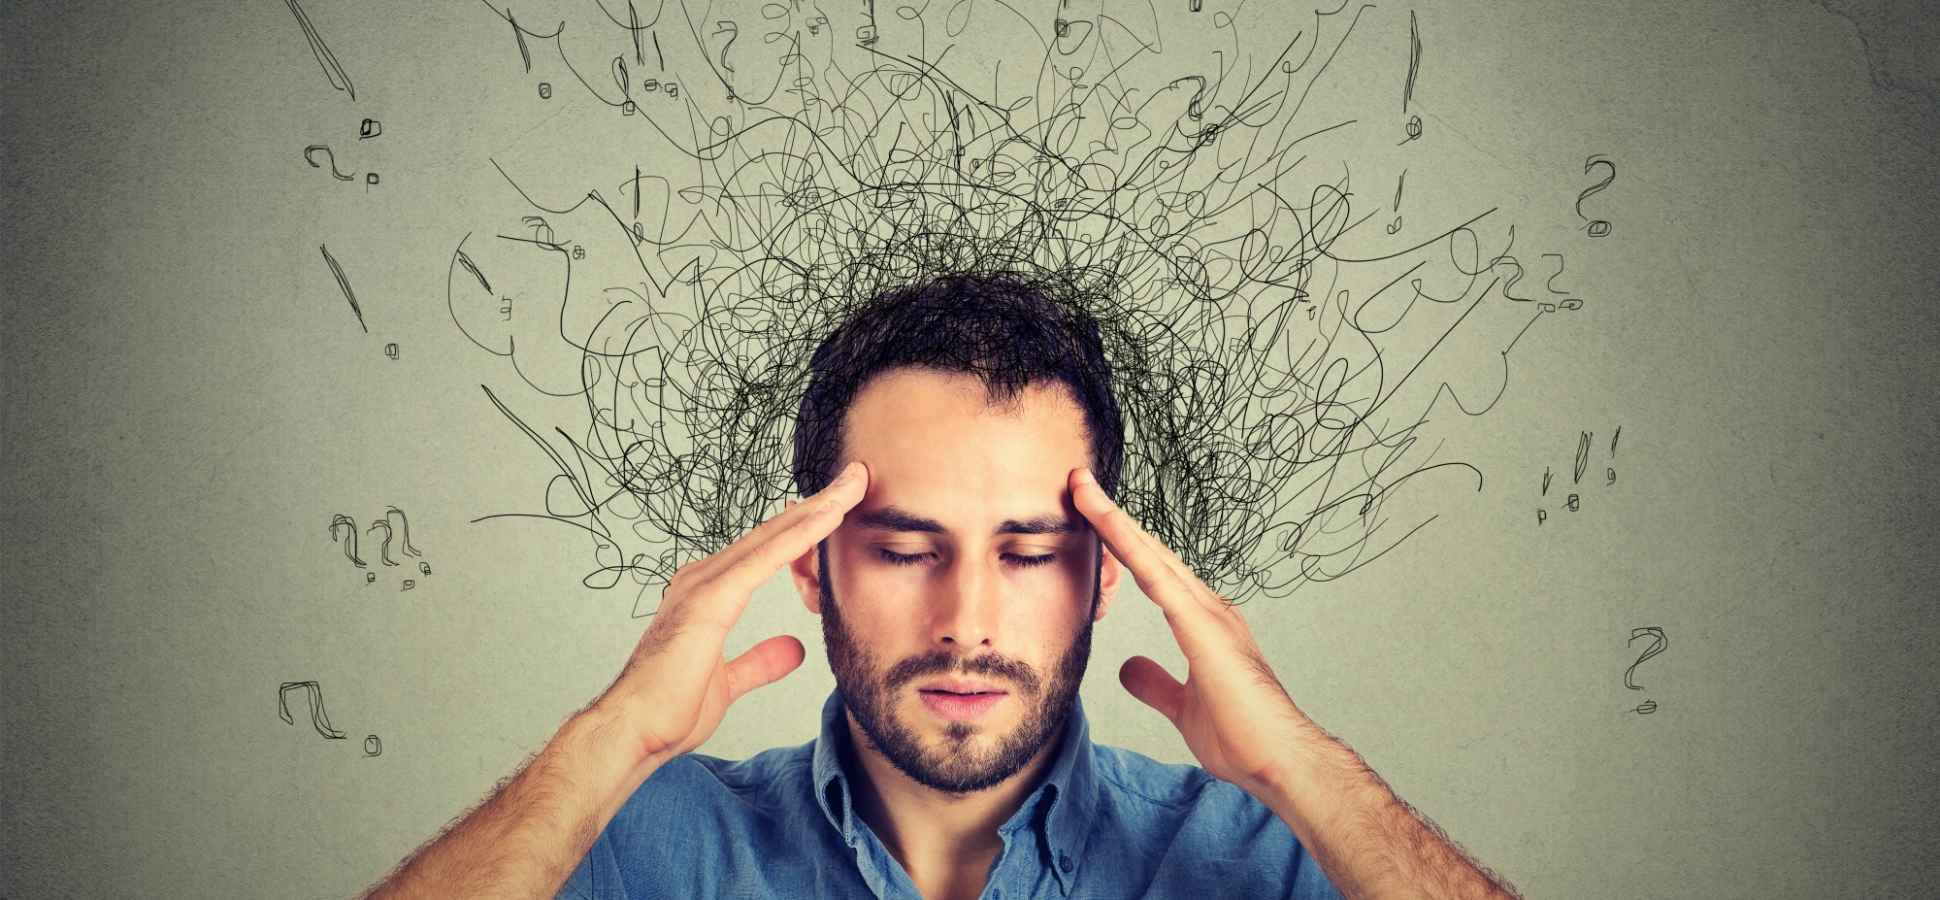 10 Easy Steps You Can Take Right Now to Lighten Your Mental Load